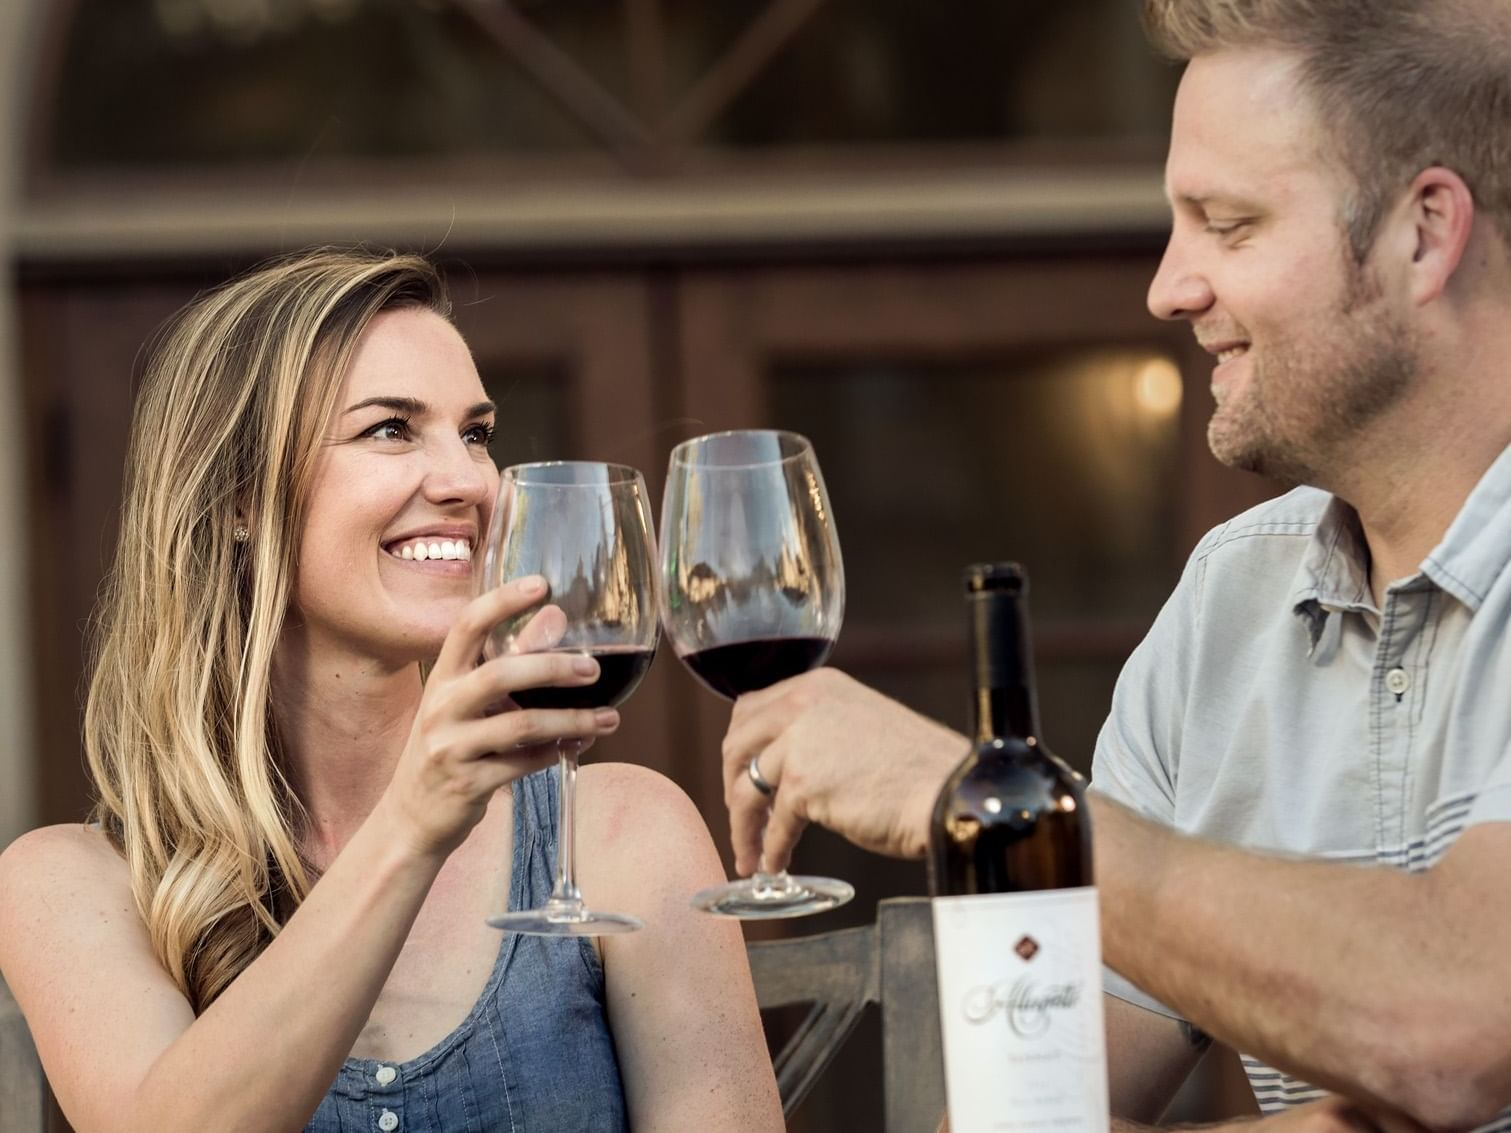 Woman and man toasting with wine glasses